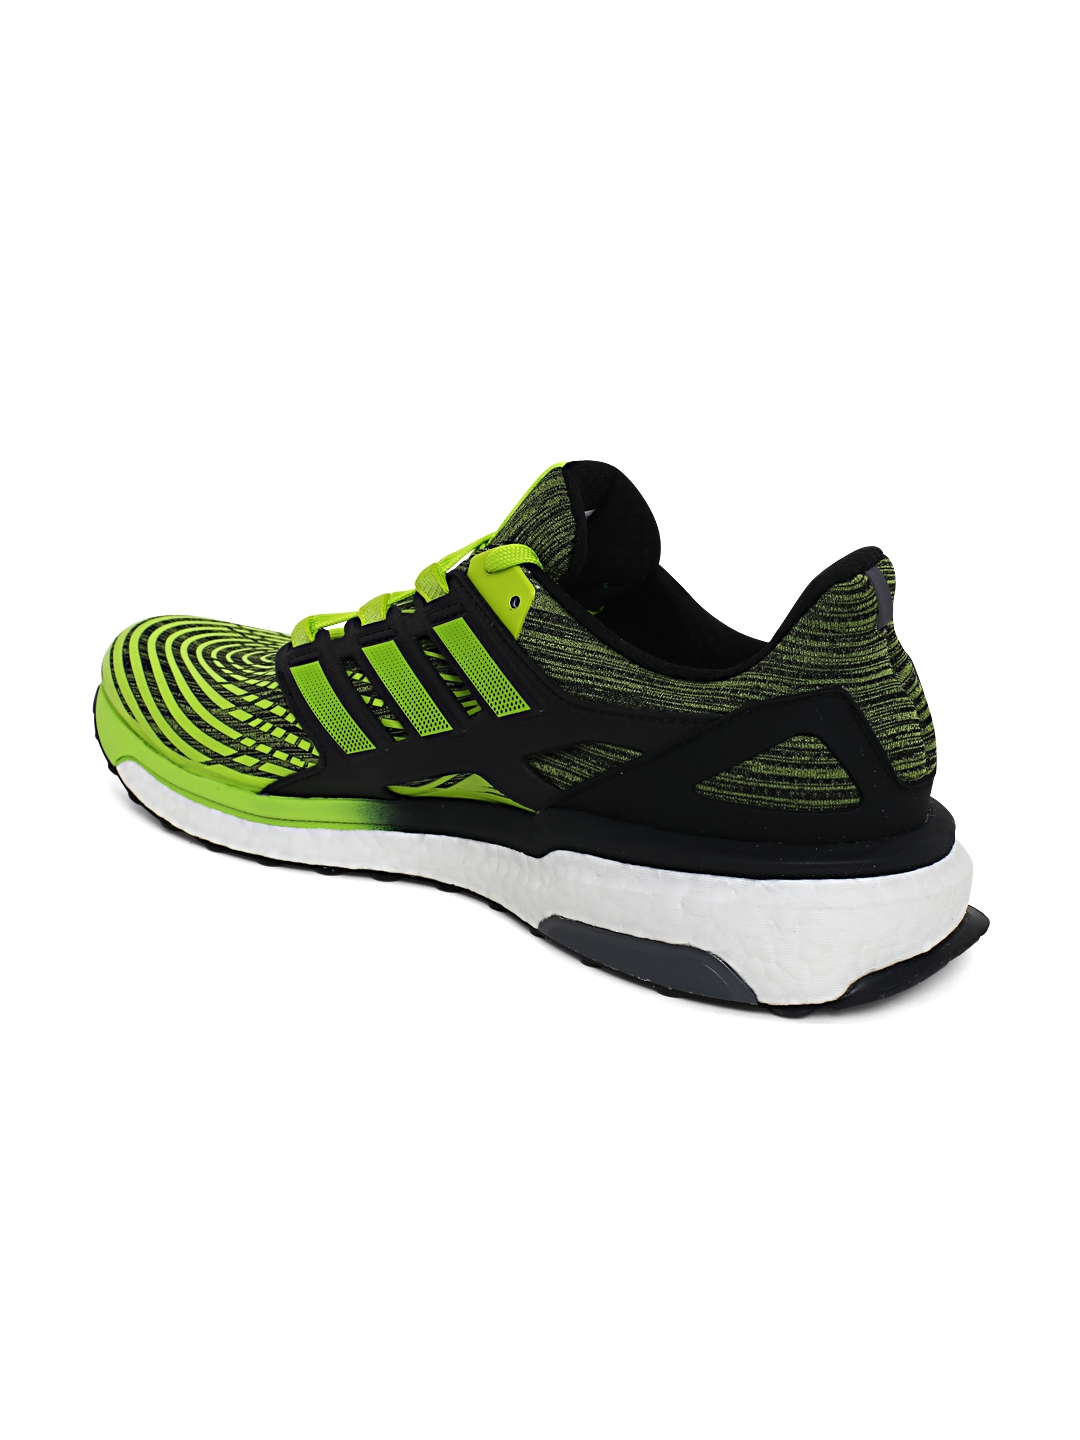 c71f7cdcca94 Buy ADIDAS Men Black   Neon Green Energy Boost Running Shoes ...